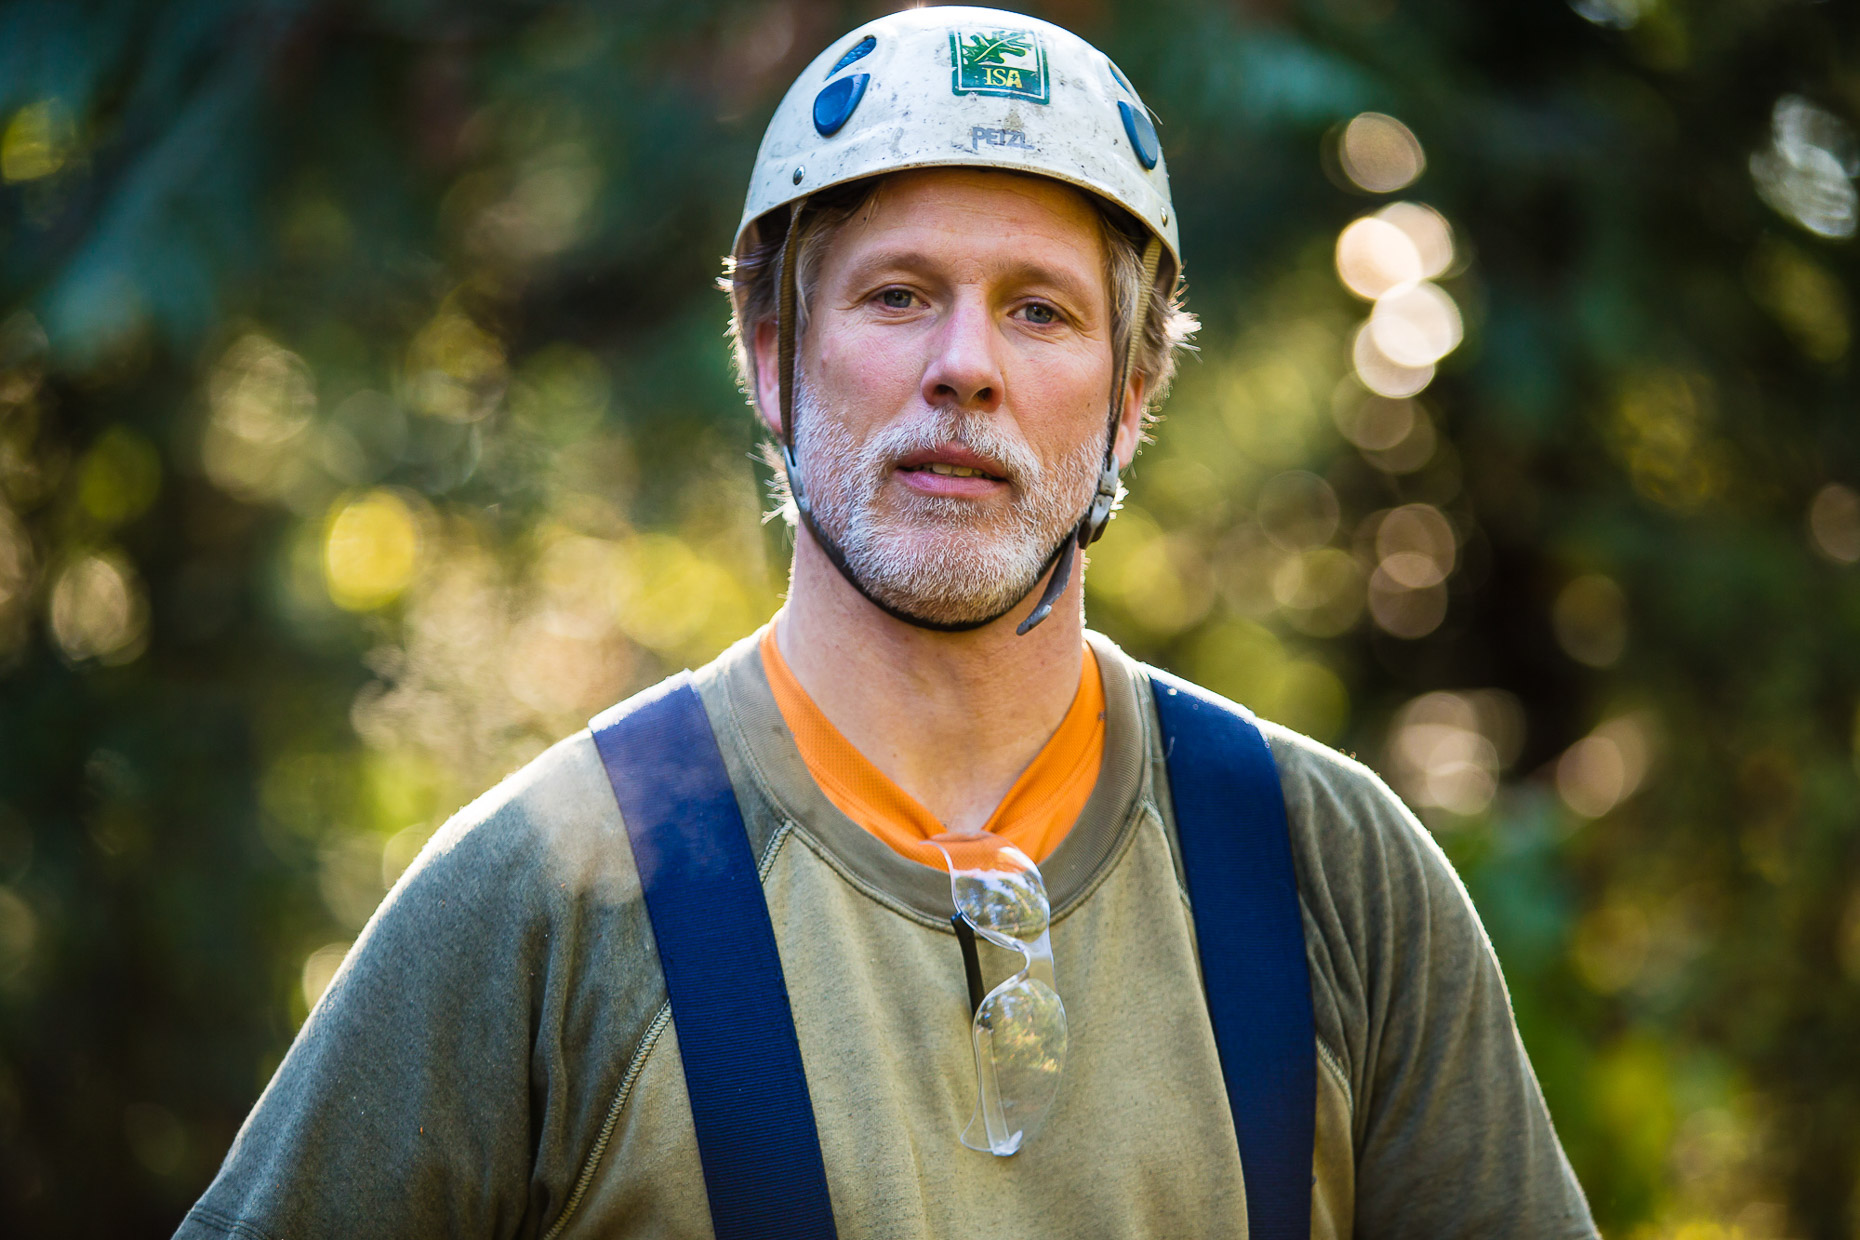 Authentic Portraits of People at Work  :  Seattle Industrial Photographer :  Jed Share Images :  Portrait of an arborist working in Seattle